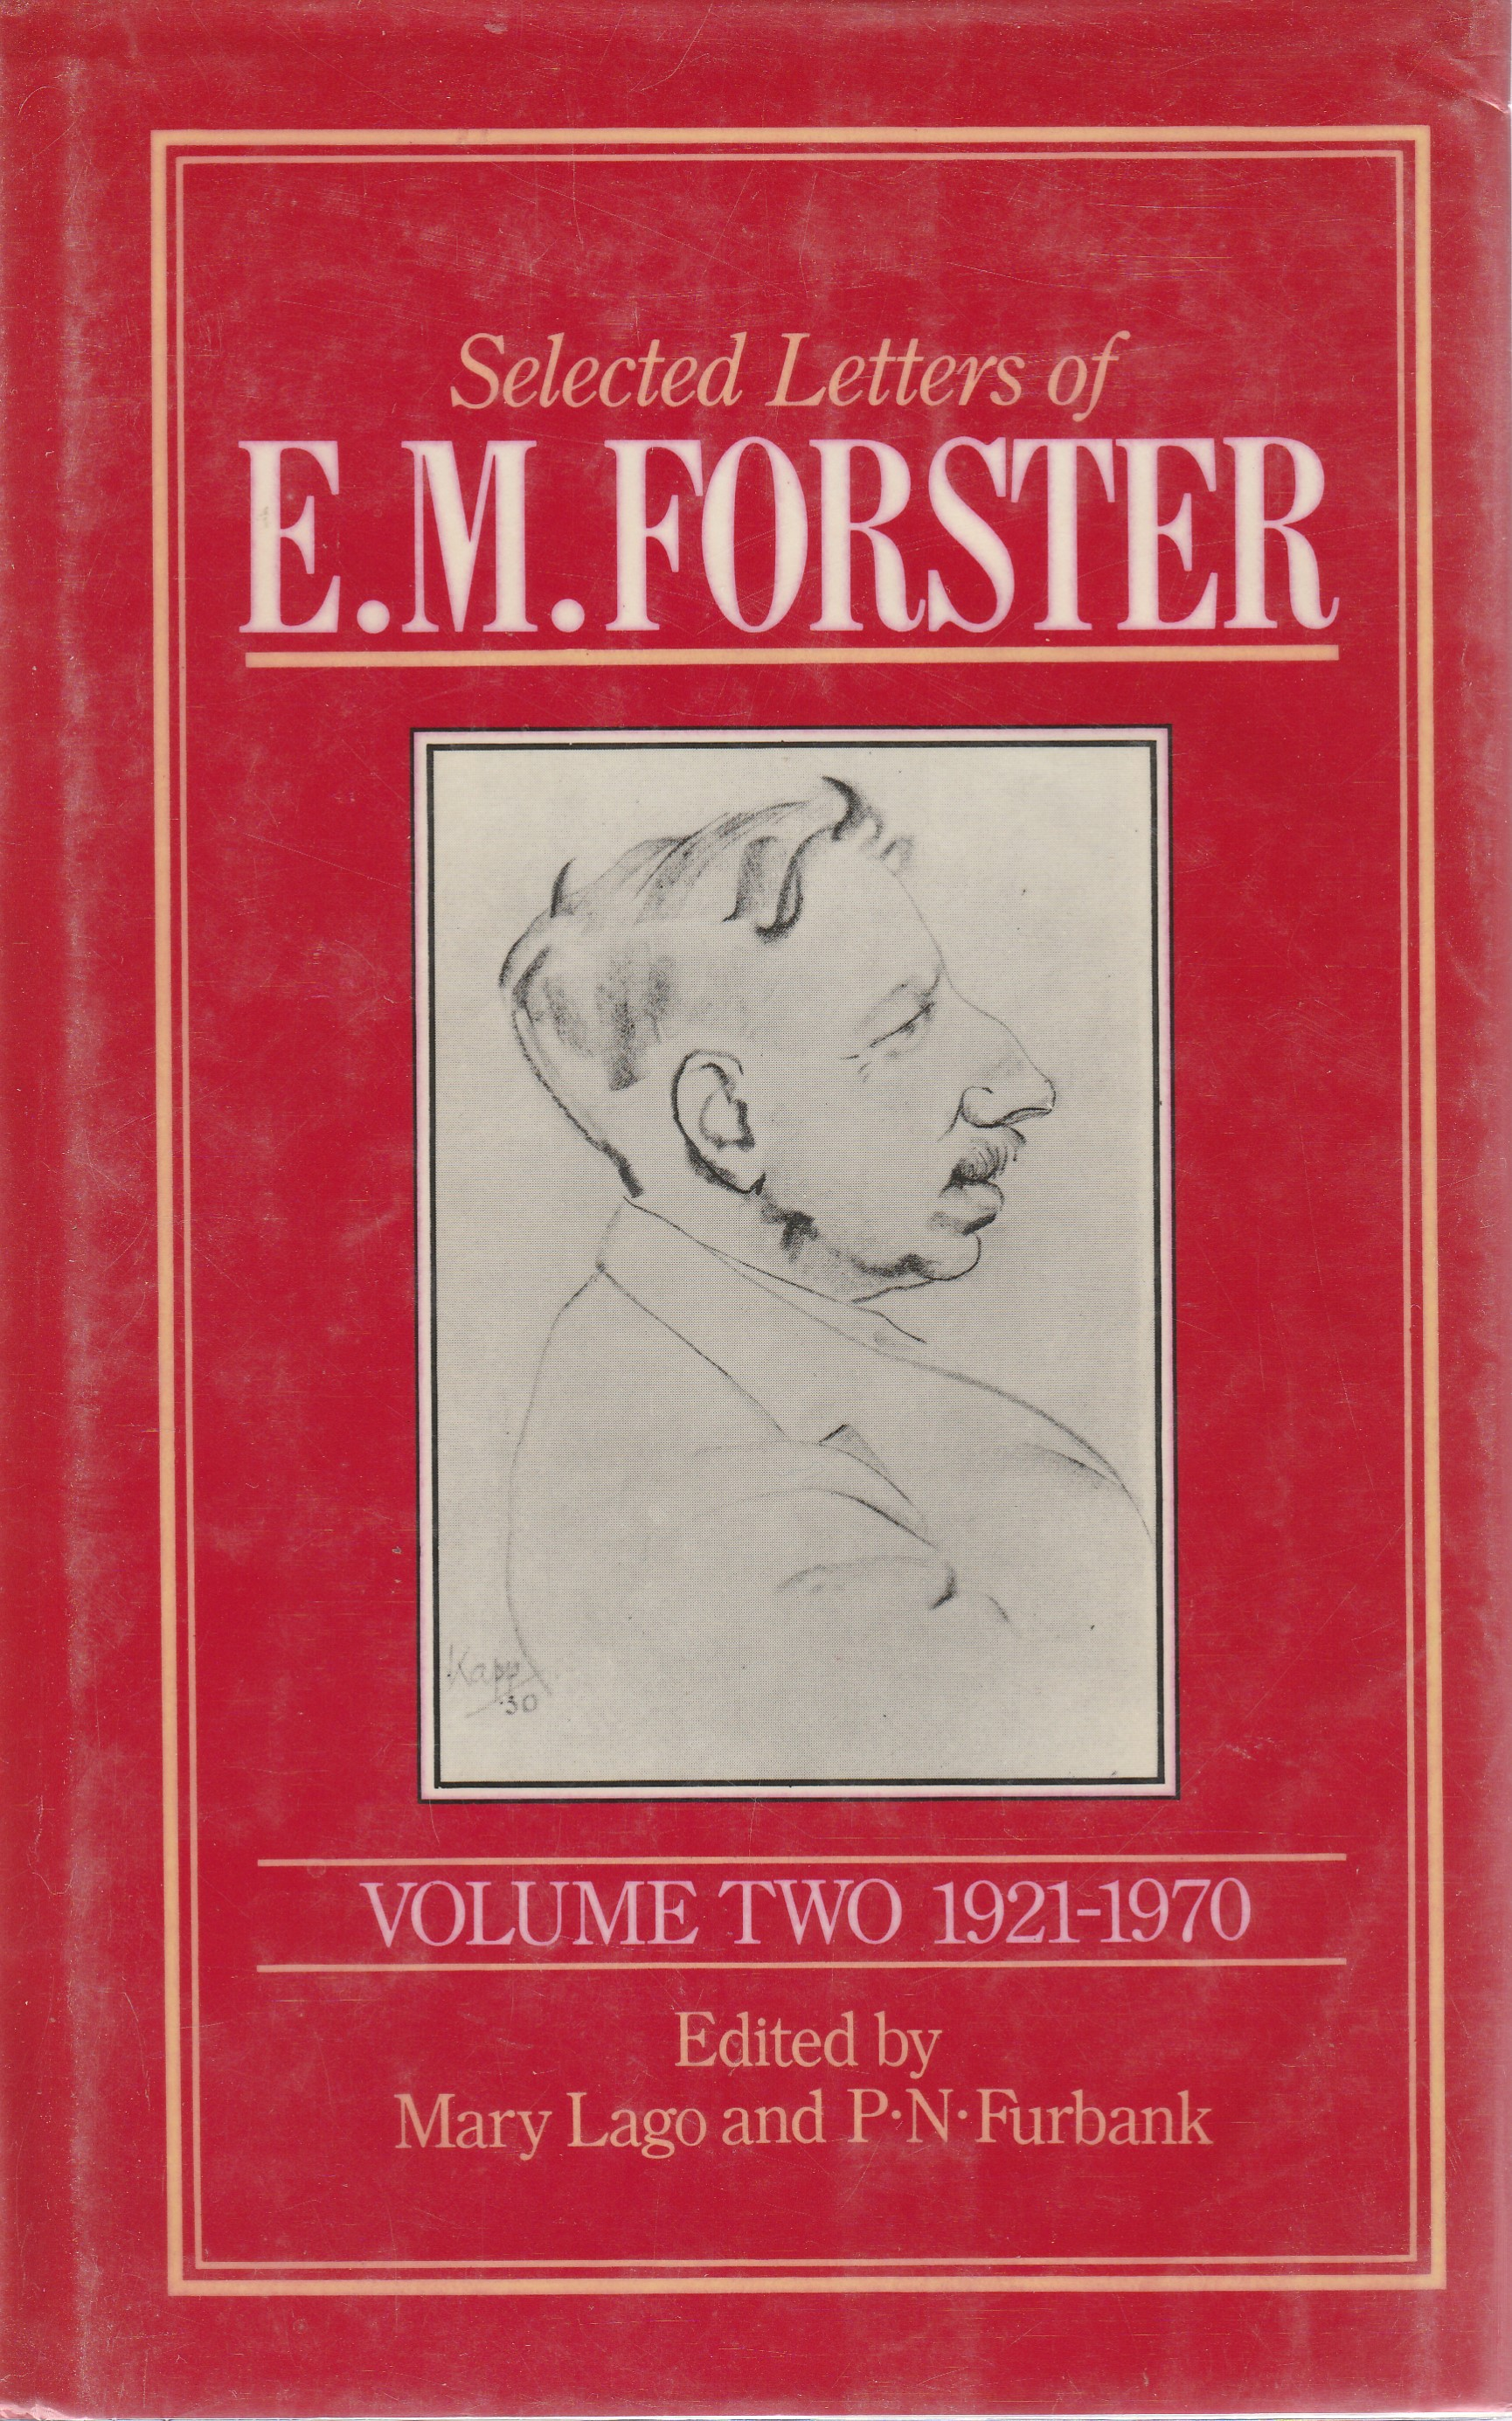 Selected Letters of E.M. Forster